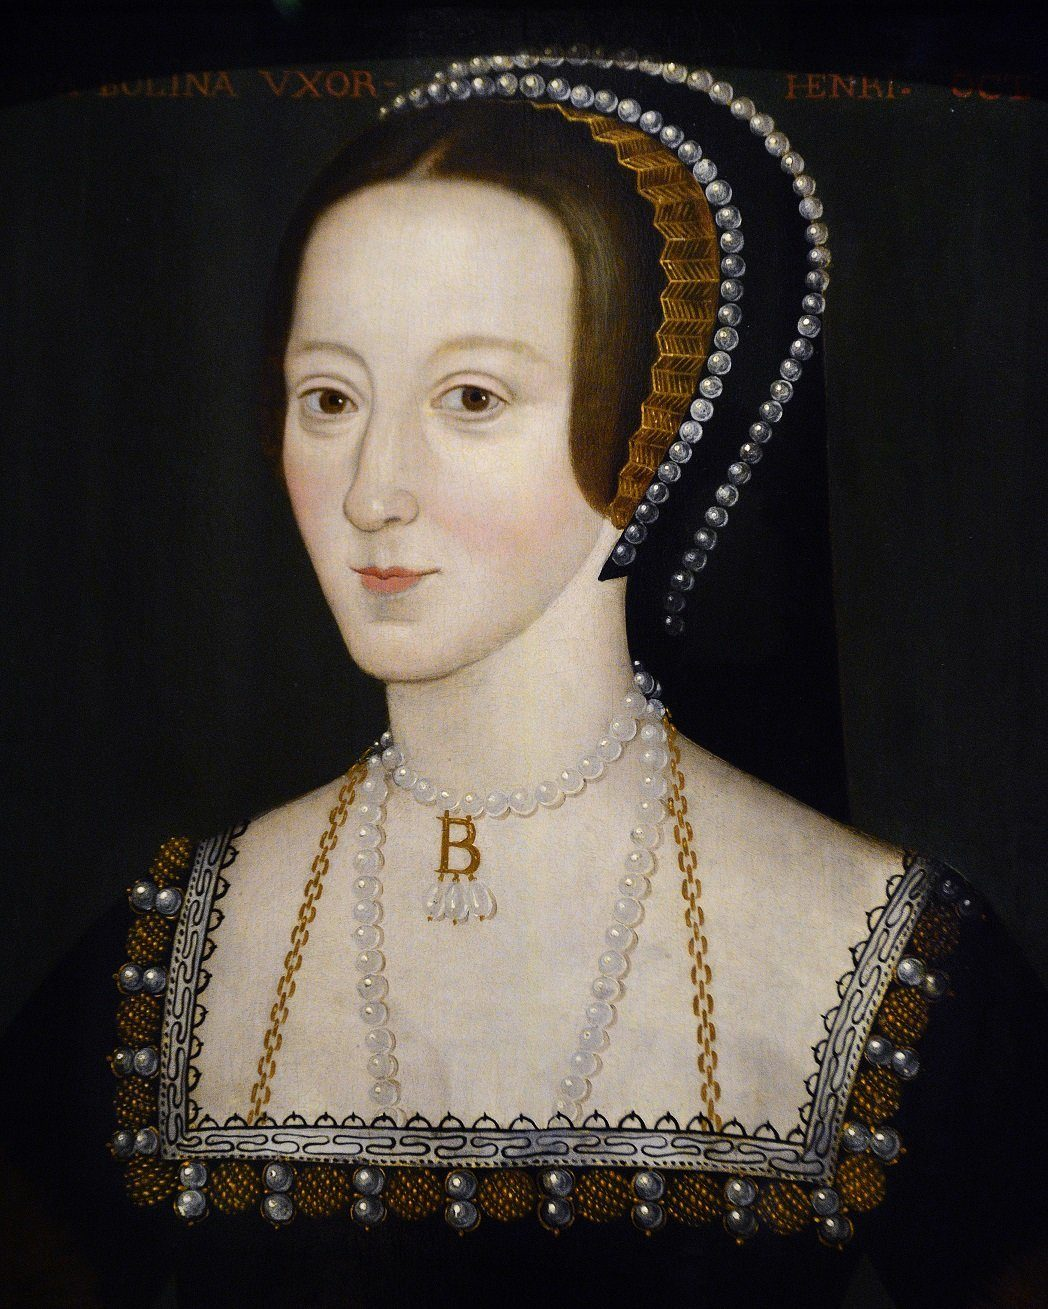 A late 16th century portrait of Anne Boleyn (c.1500-1536) by an unknown artist on display at the National Portrait Gallery in London, England.